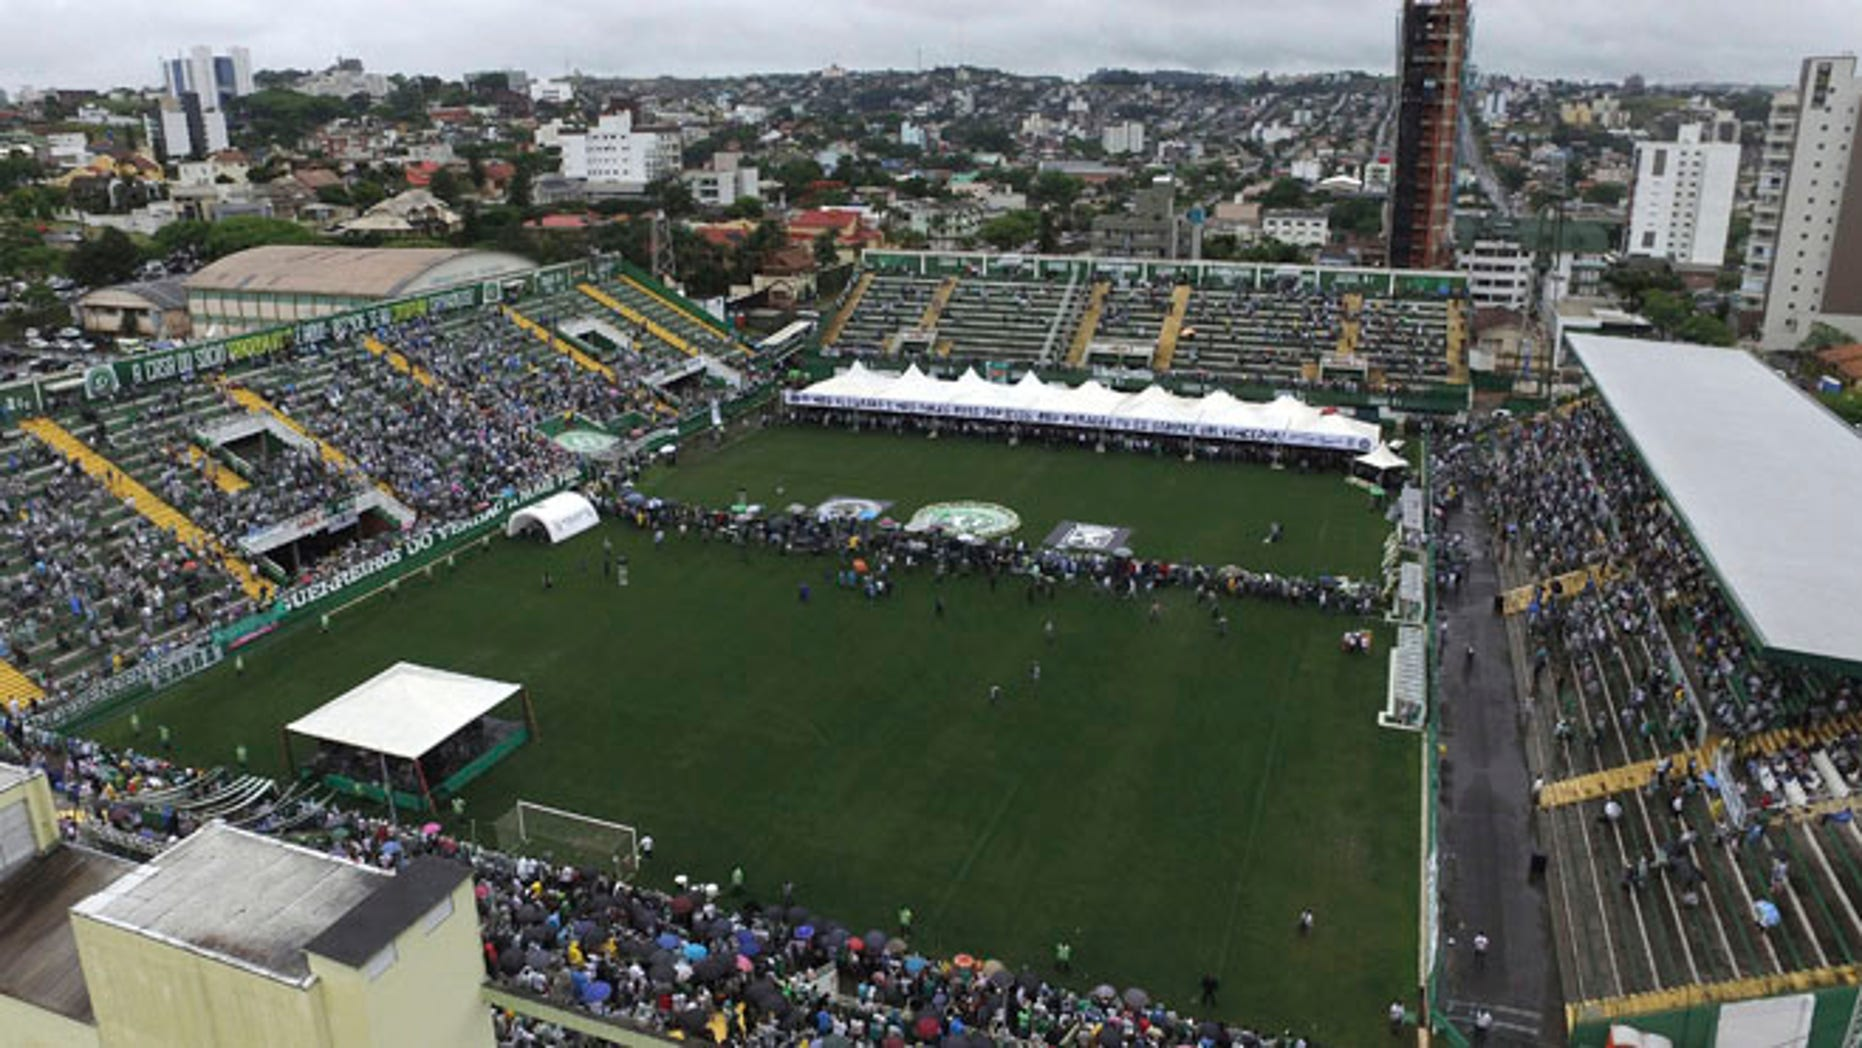 Chapecoense soccer fans attend a memorial for team members who died in a plane crash, at Arena Conda stadium where the caskets stand under the white tarp on the field, in Chapeco, Brazil, Saturday, Dec.3, 2016. The accident Monday in the Colombian Andes claimed most of the team's players and staff as it headed to the finals of one of Latin America's most important club tournaments. (AP Photo/Wesley Santos)